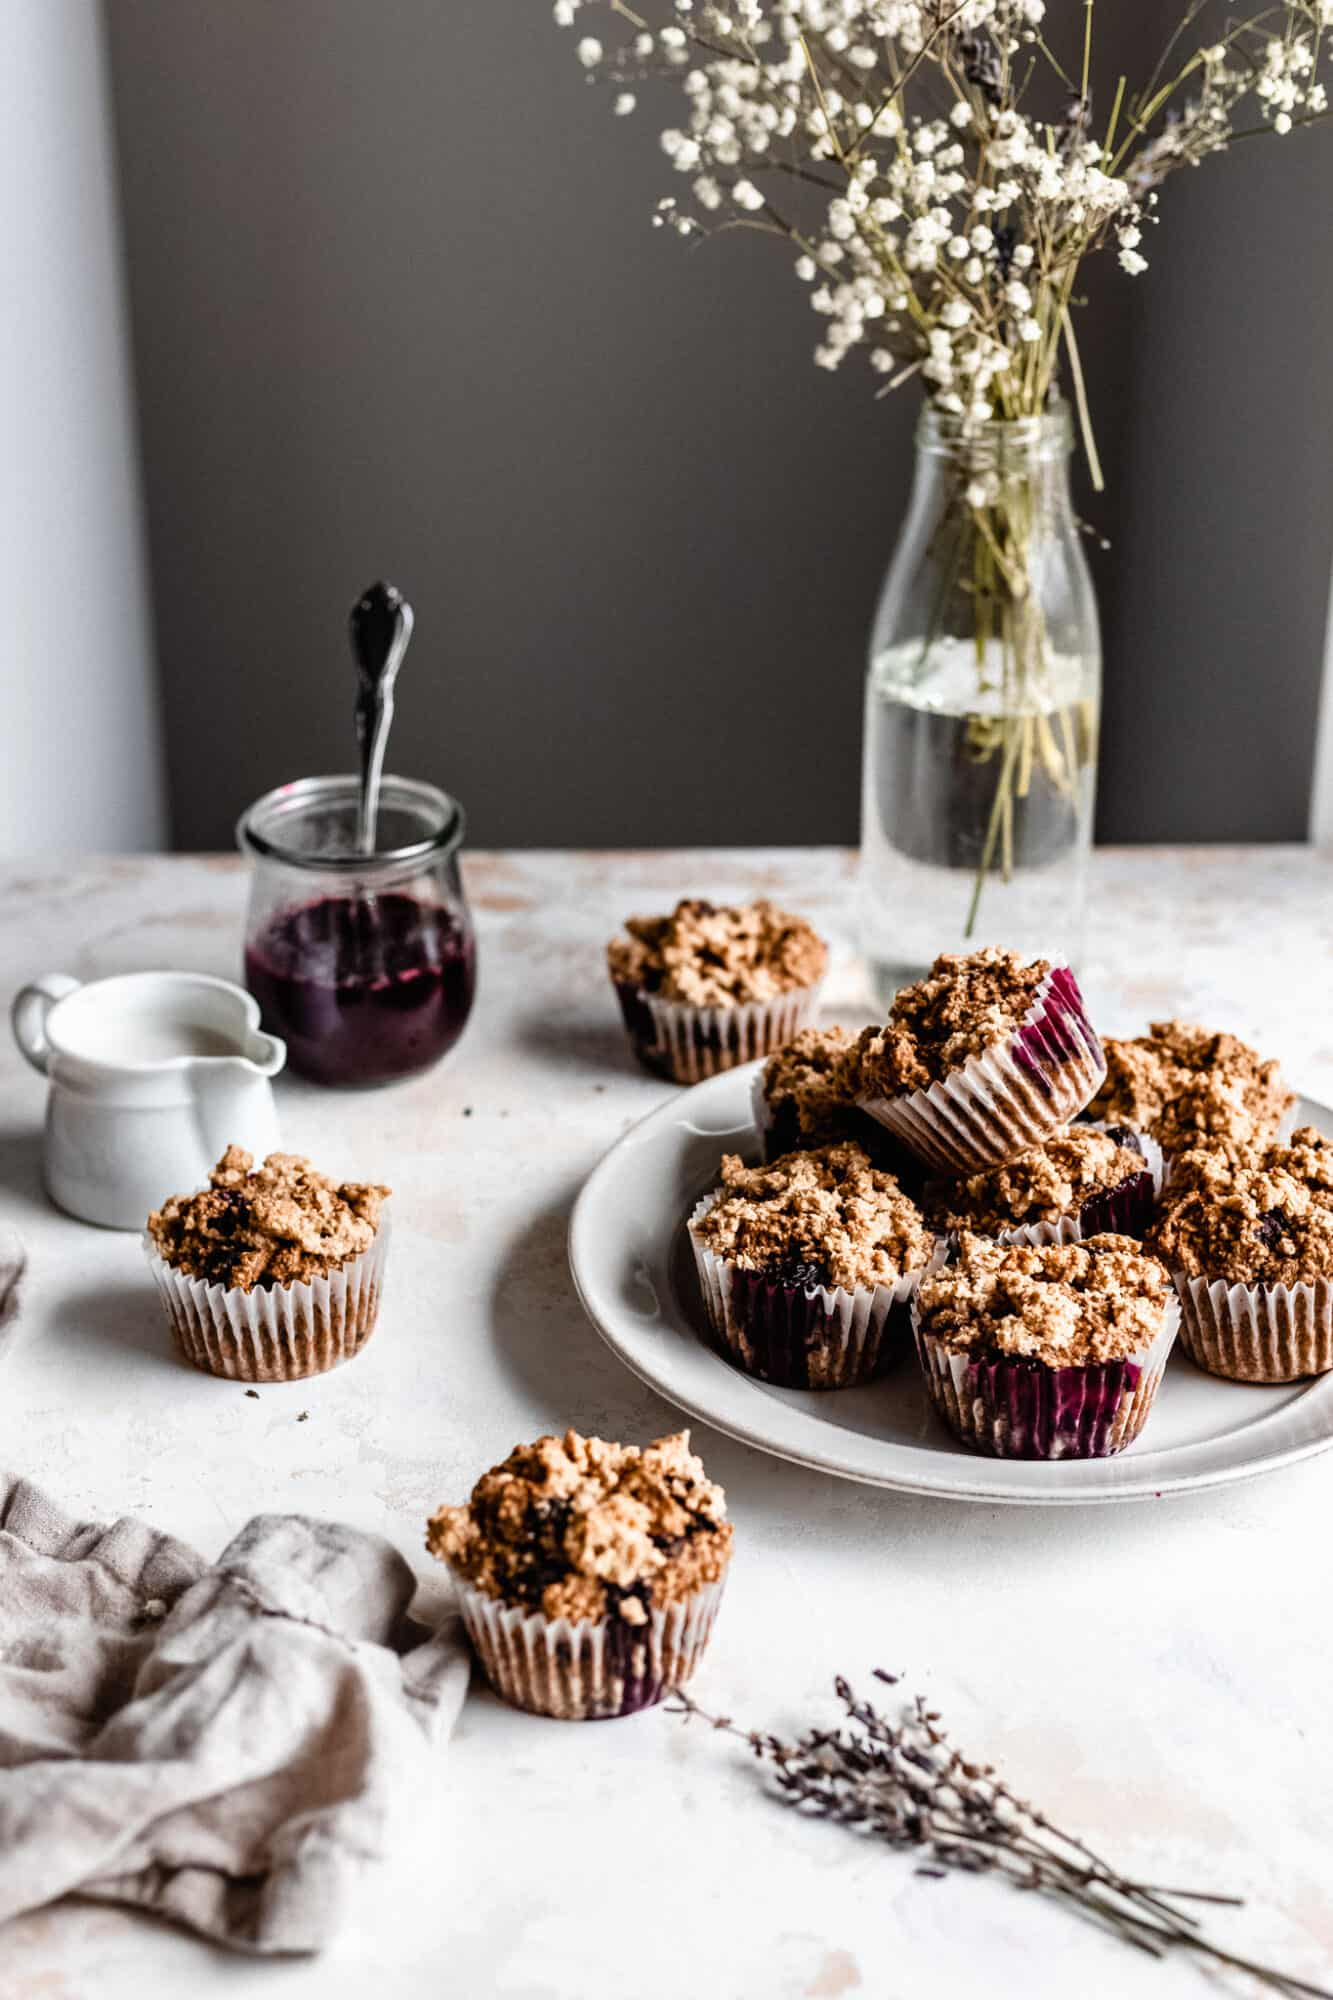 vegan blueberry muffins on plate